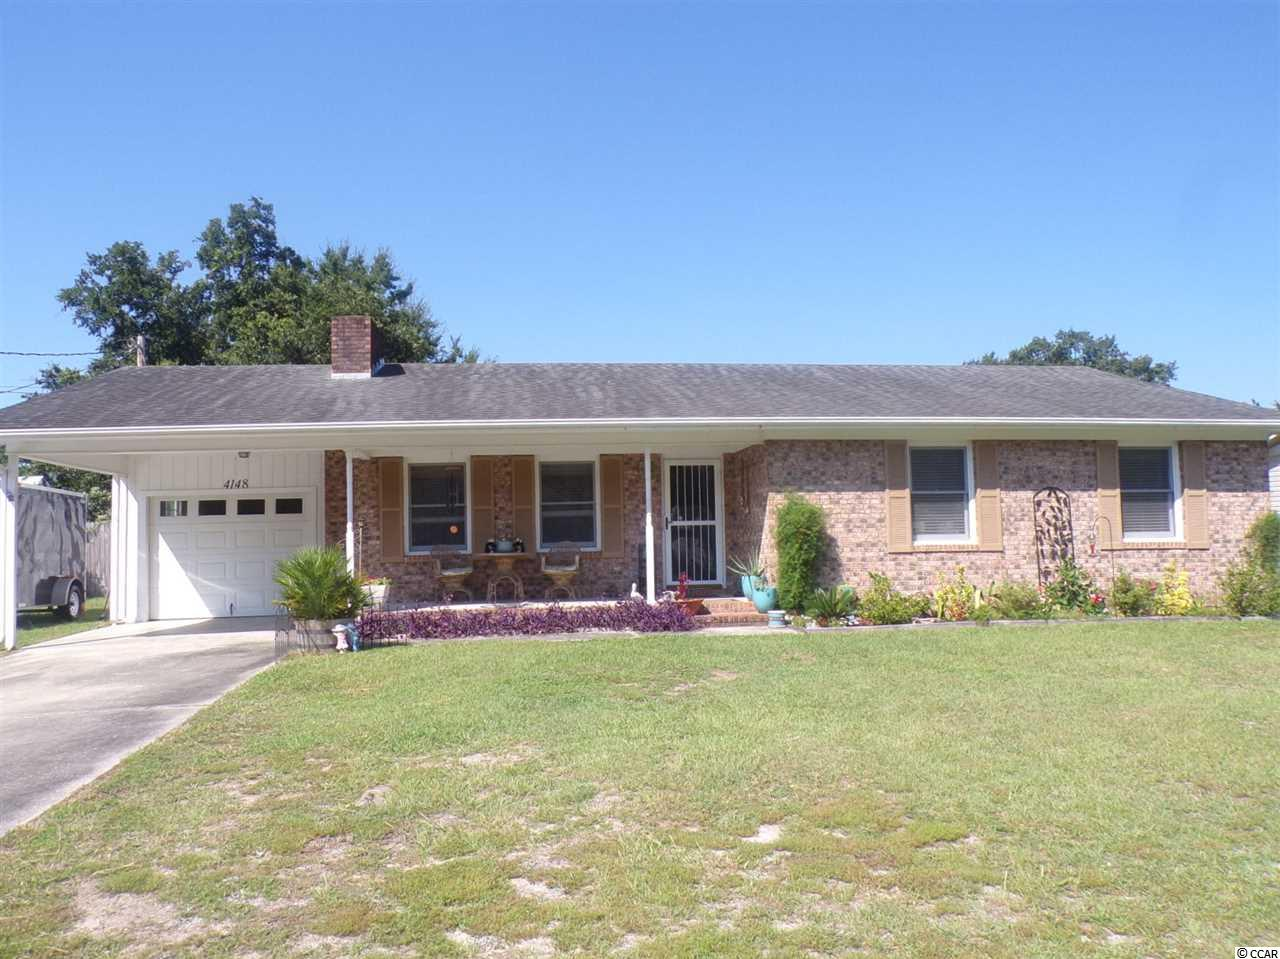 This beautiful 3 bedroom, 2 bath brick  home is on a spacious fenced in lot.   French door slate refrigerator and other matching appliances.  The large kitchen has lots of storage space!  Crown molding in every room! Large screened in porch!  No HOA and is in a beautiful community!  Don't miss this home close to the beaches, restaurants, and the Little River waterfront!  This home is also handicapped accessible.